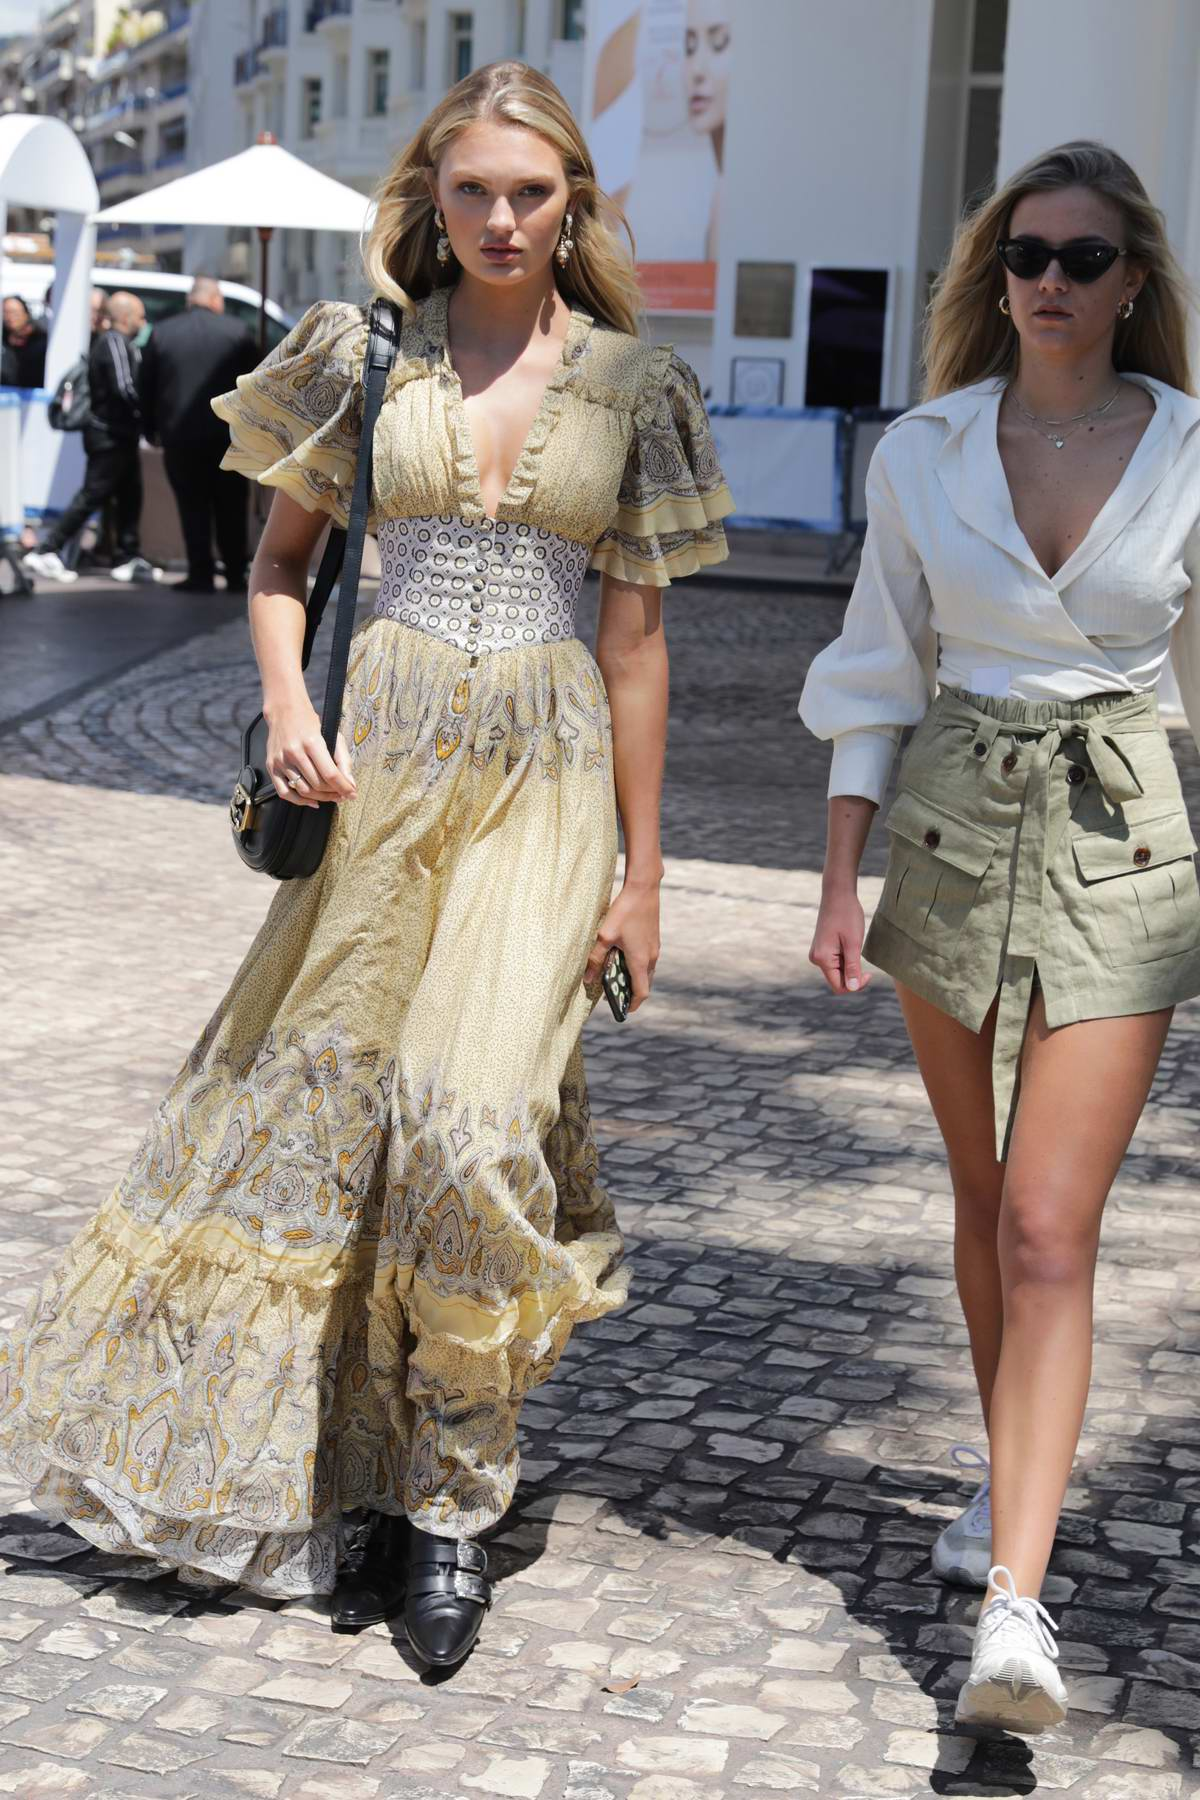 Romee Strijd wears flowing long dress while out during 72nd Cannes annual Film Festival in Cannes, France